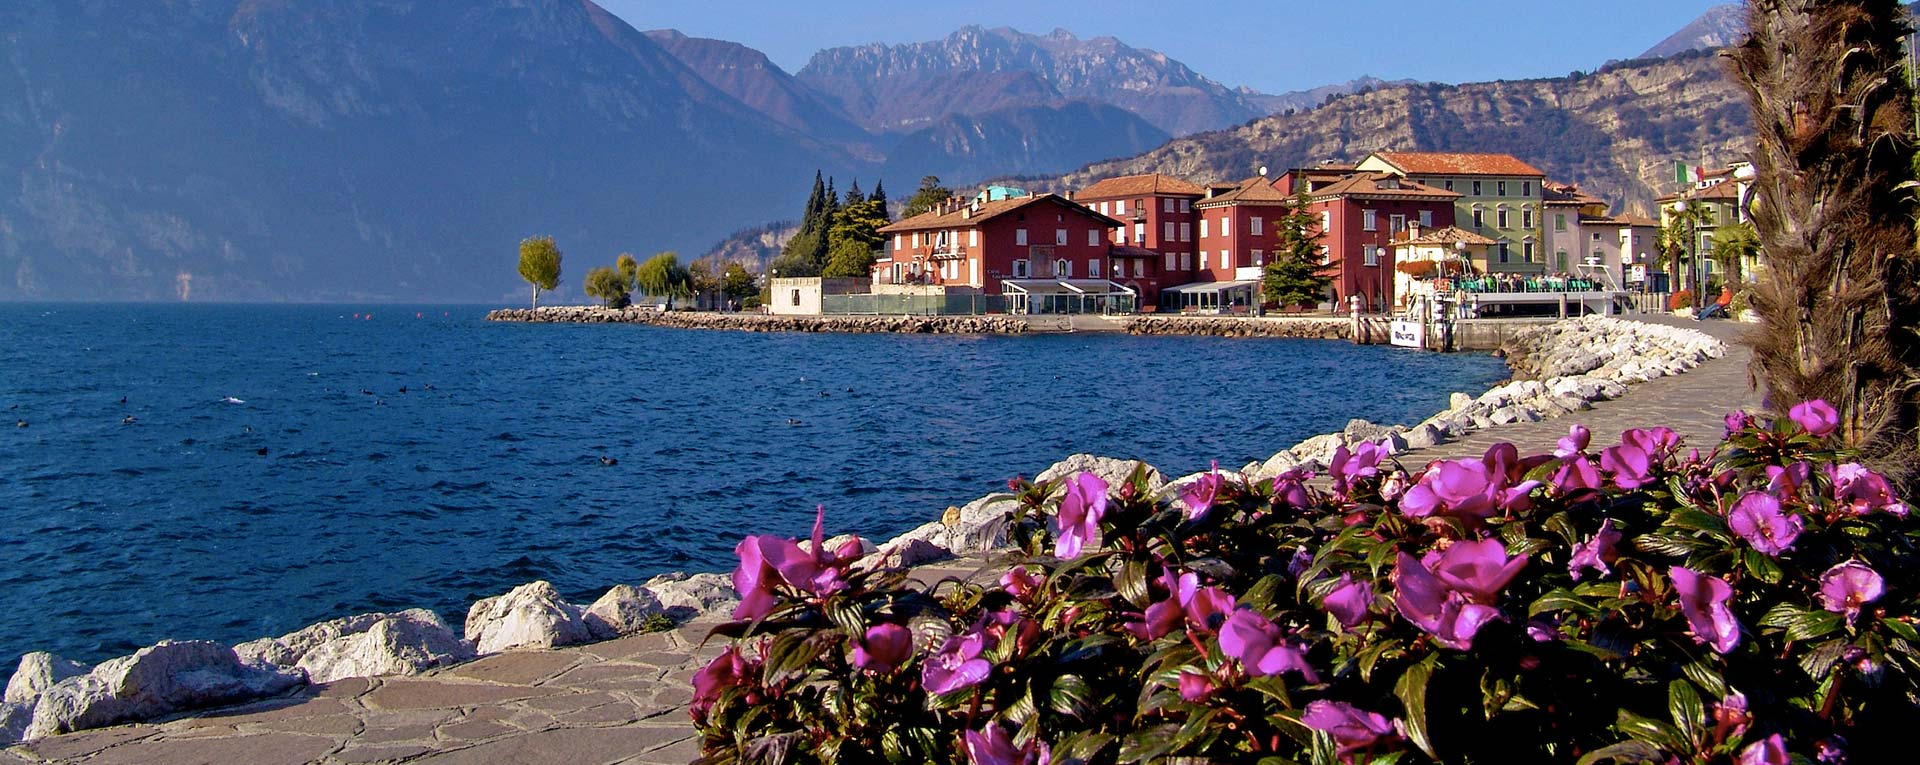 Torbole on Lake Garda at Easter time